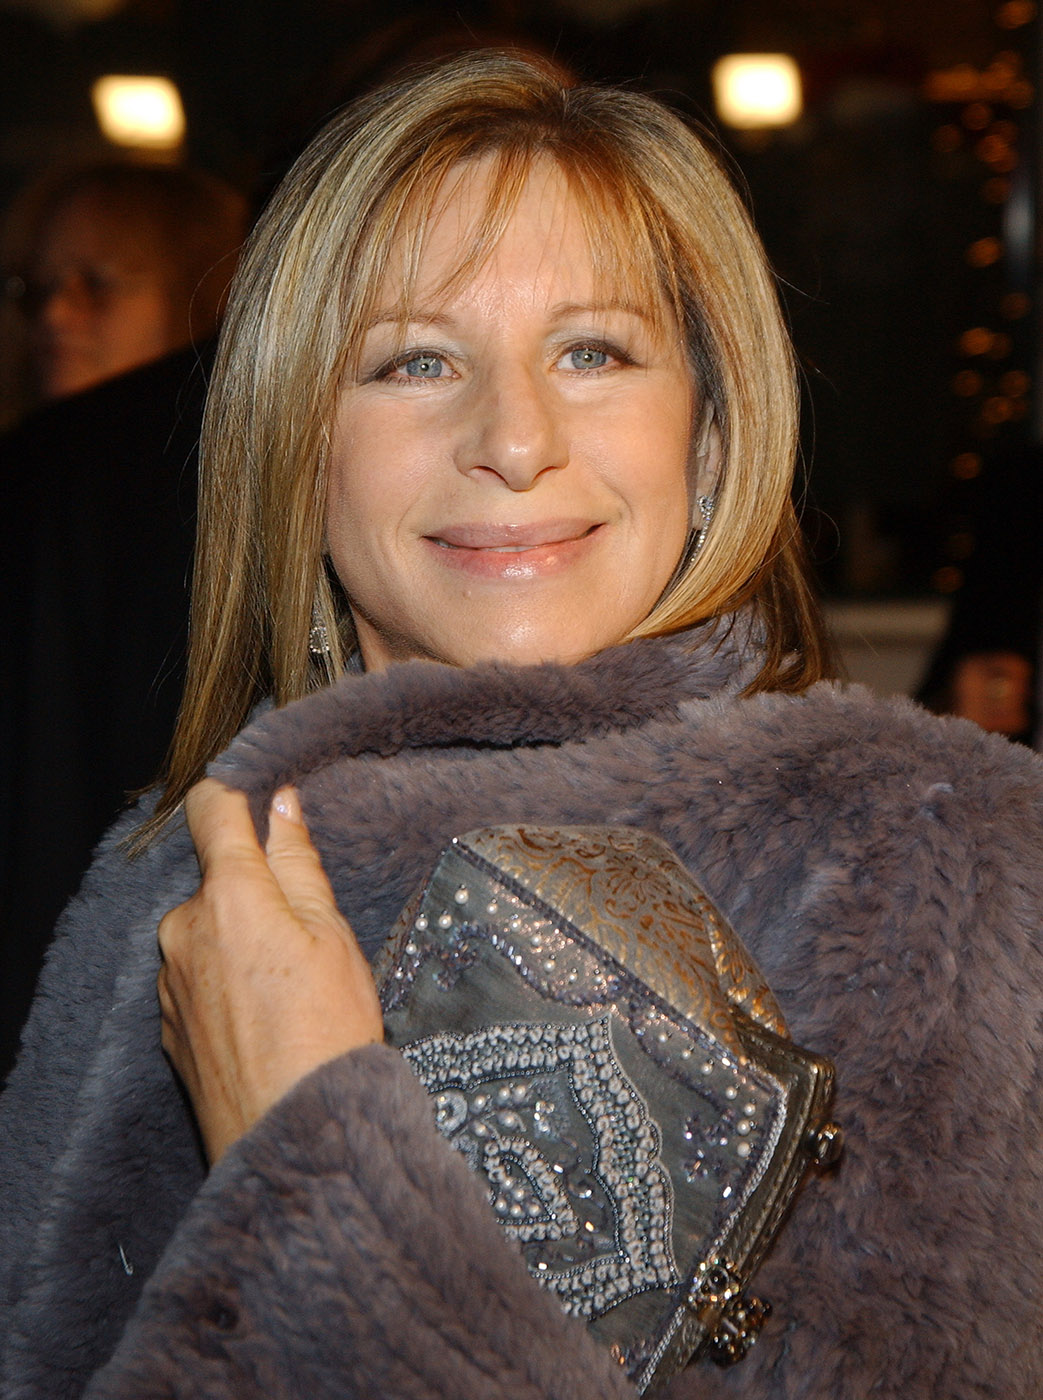 barbra streisand - photo #17